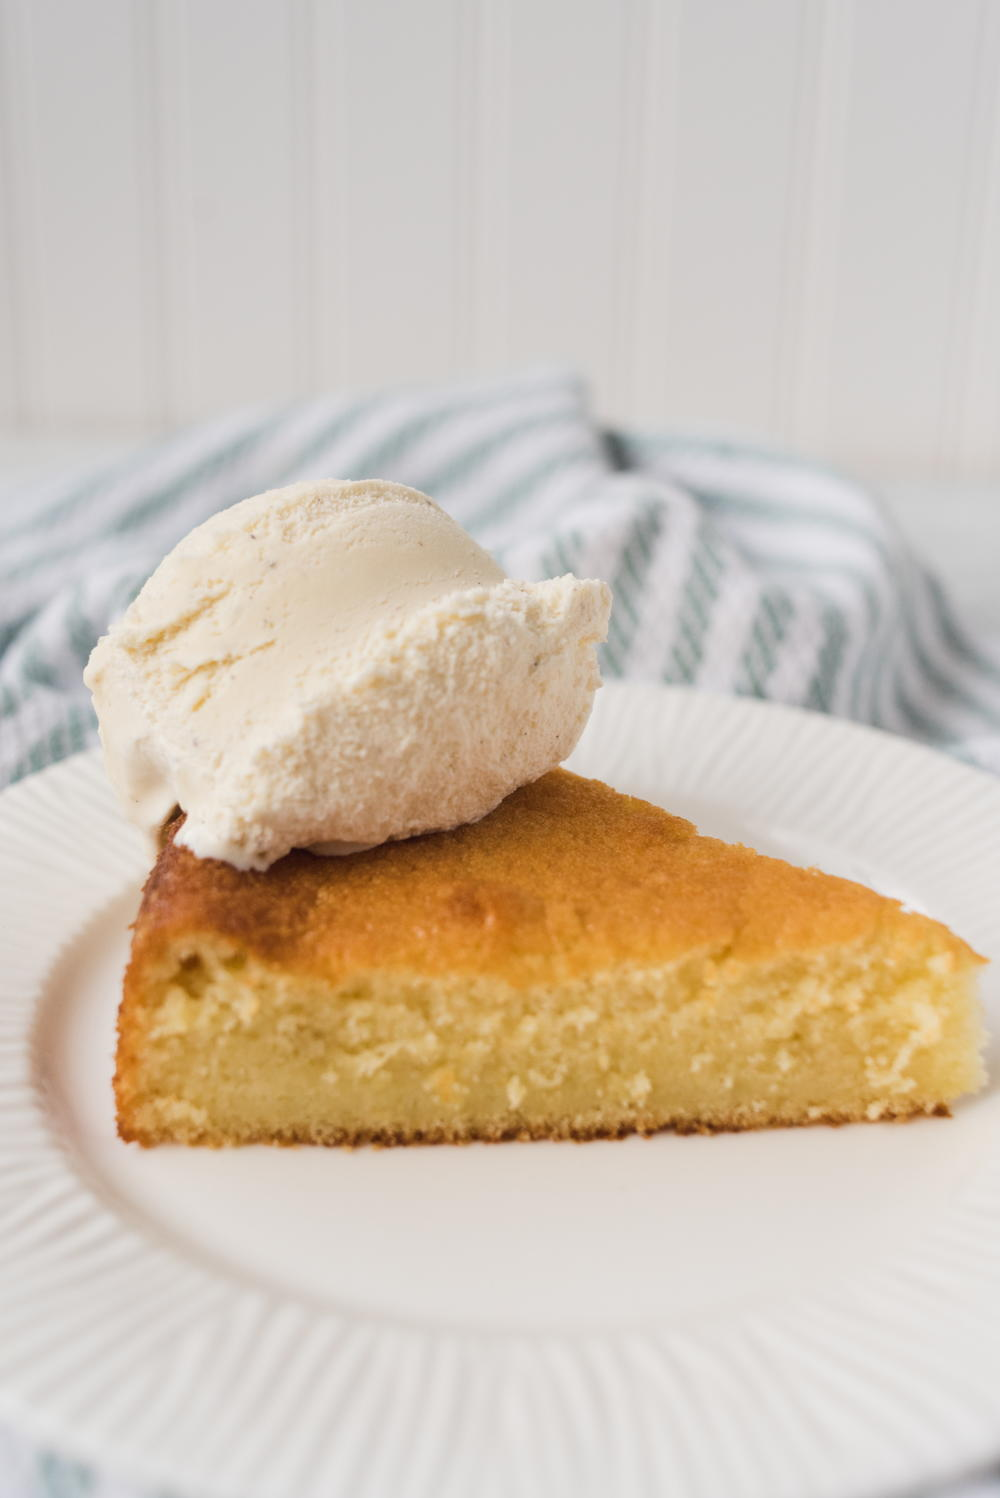 California Pizza Kitchen Butter Cake Copycat Recipe ...